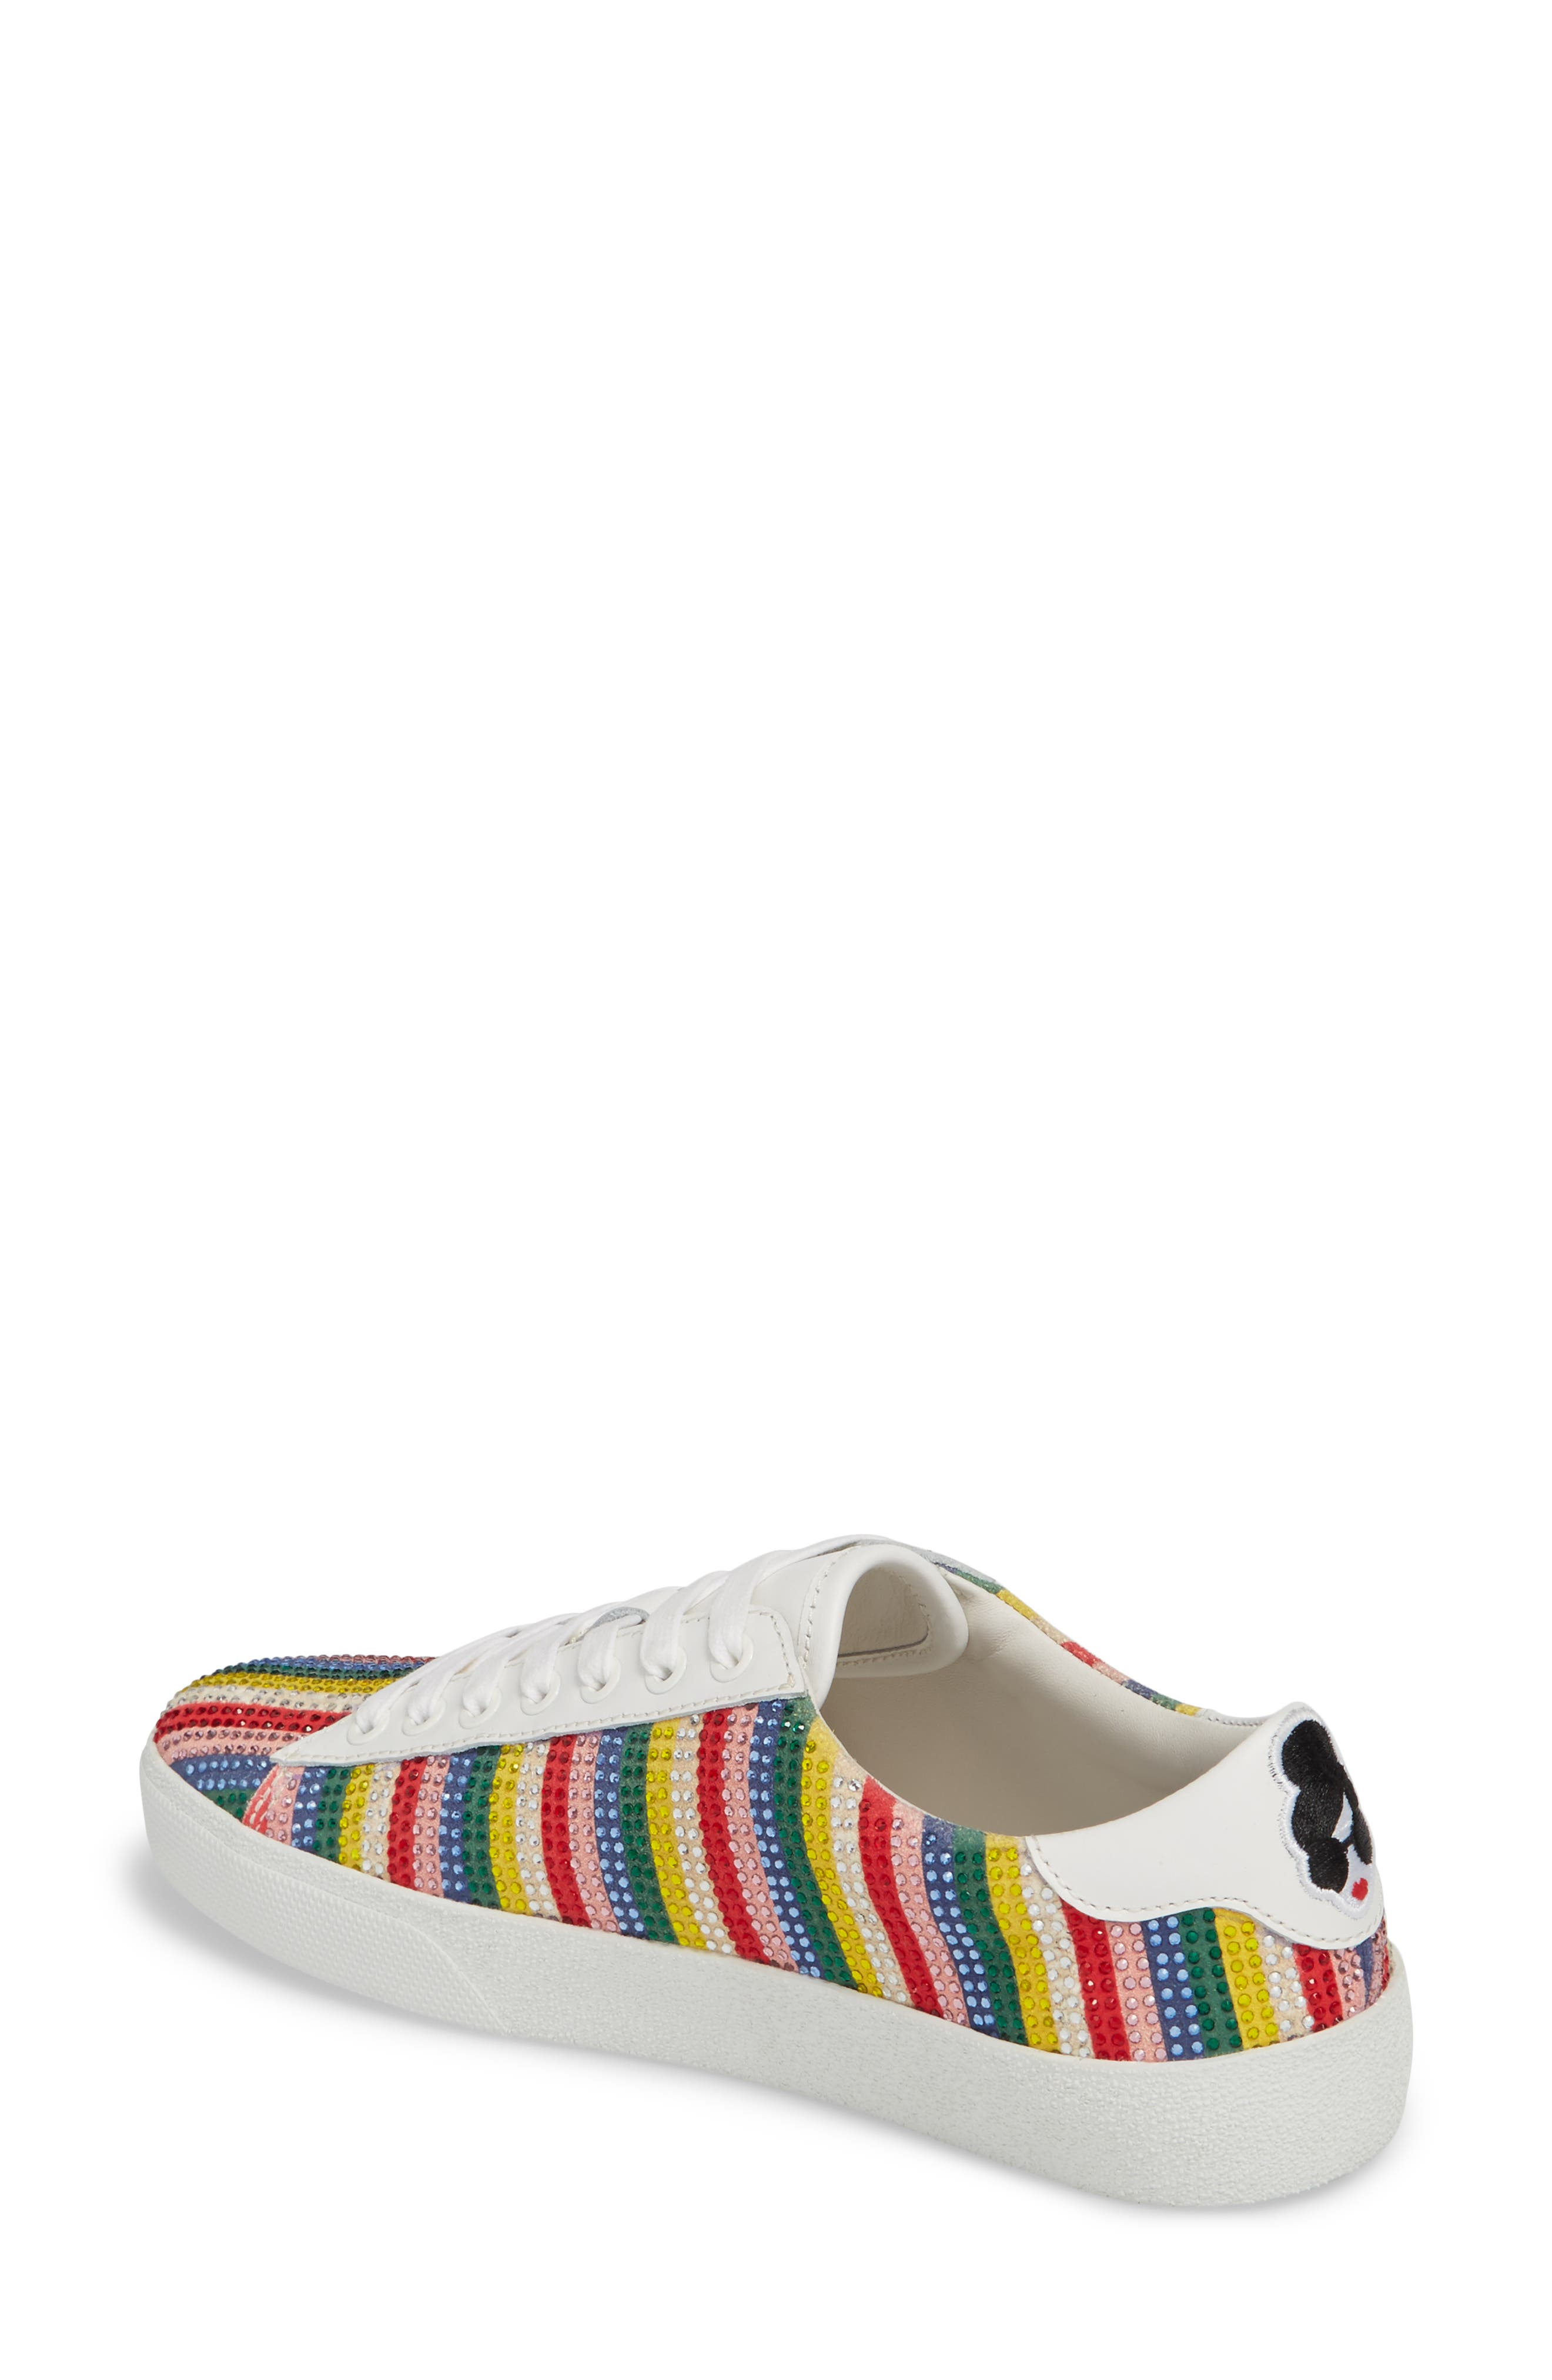 Cassidy Crystal Embellished Sneaker,                             Alternate thumbnail 2, color,                             Multi